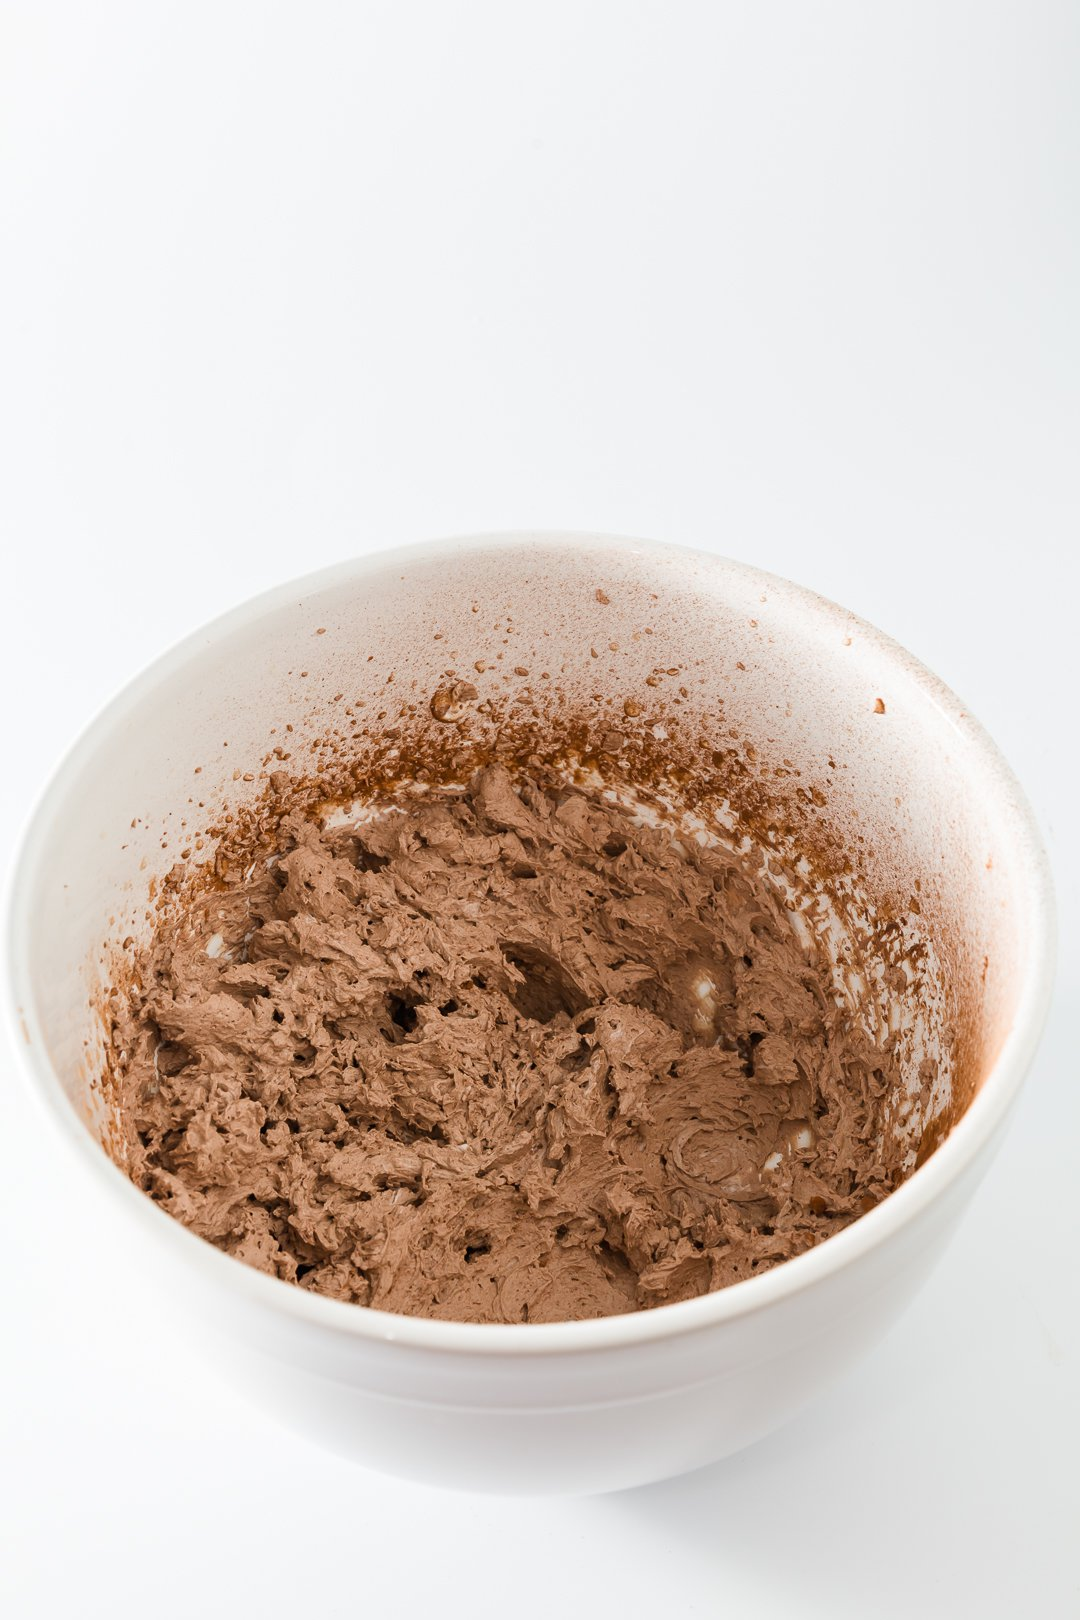 Chocolate whipped cream in a mixing bowl